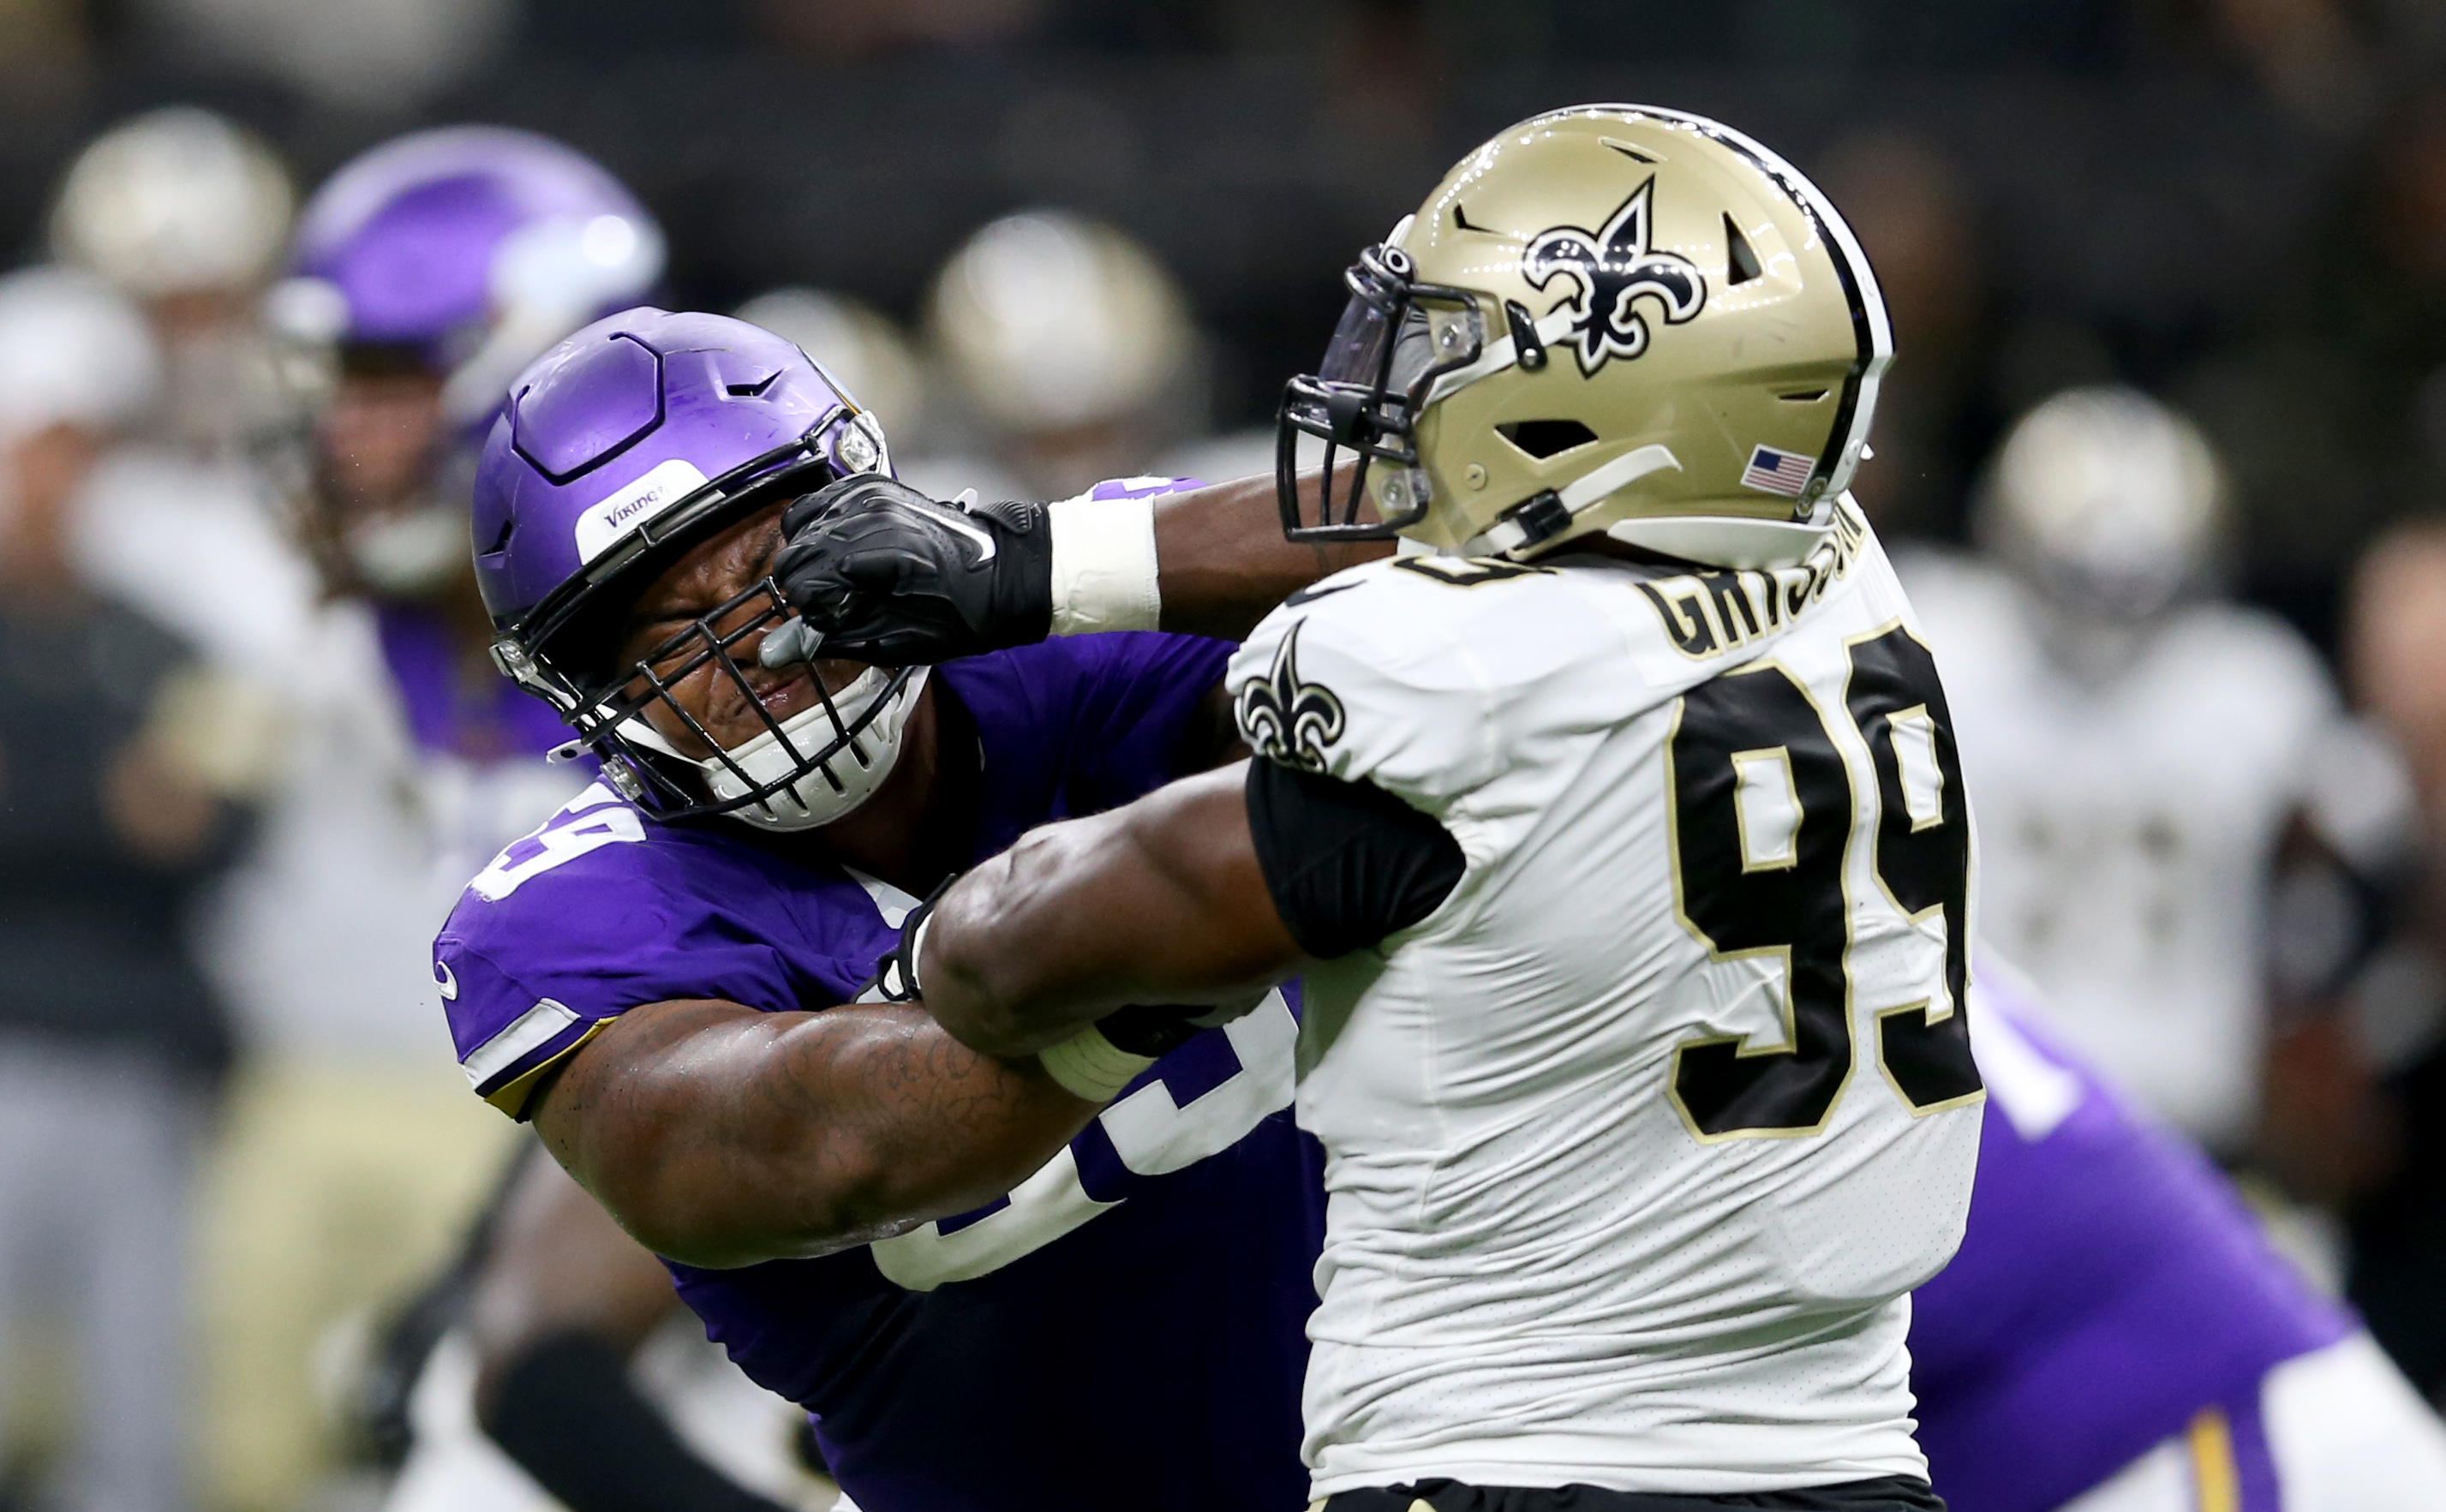 Aug 9, 2019; New Orleans, LA, USA; Minnesota Vikings offensive tackle Rashod Hill (69) blocks against New Orleans Saints defensive end Geneo Grissom (99) in the second quarter at the Mercedes-Benz Superdome. Mandatory Credit: Chuck Cook-USA TODAY Sports